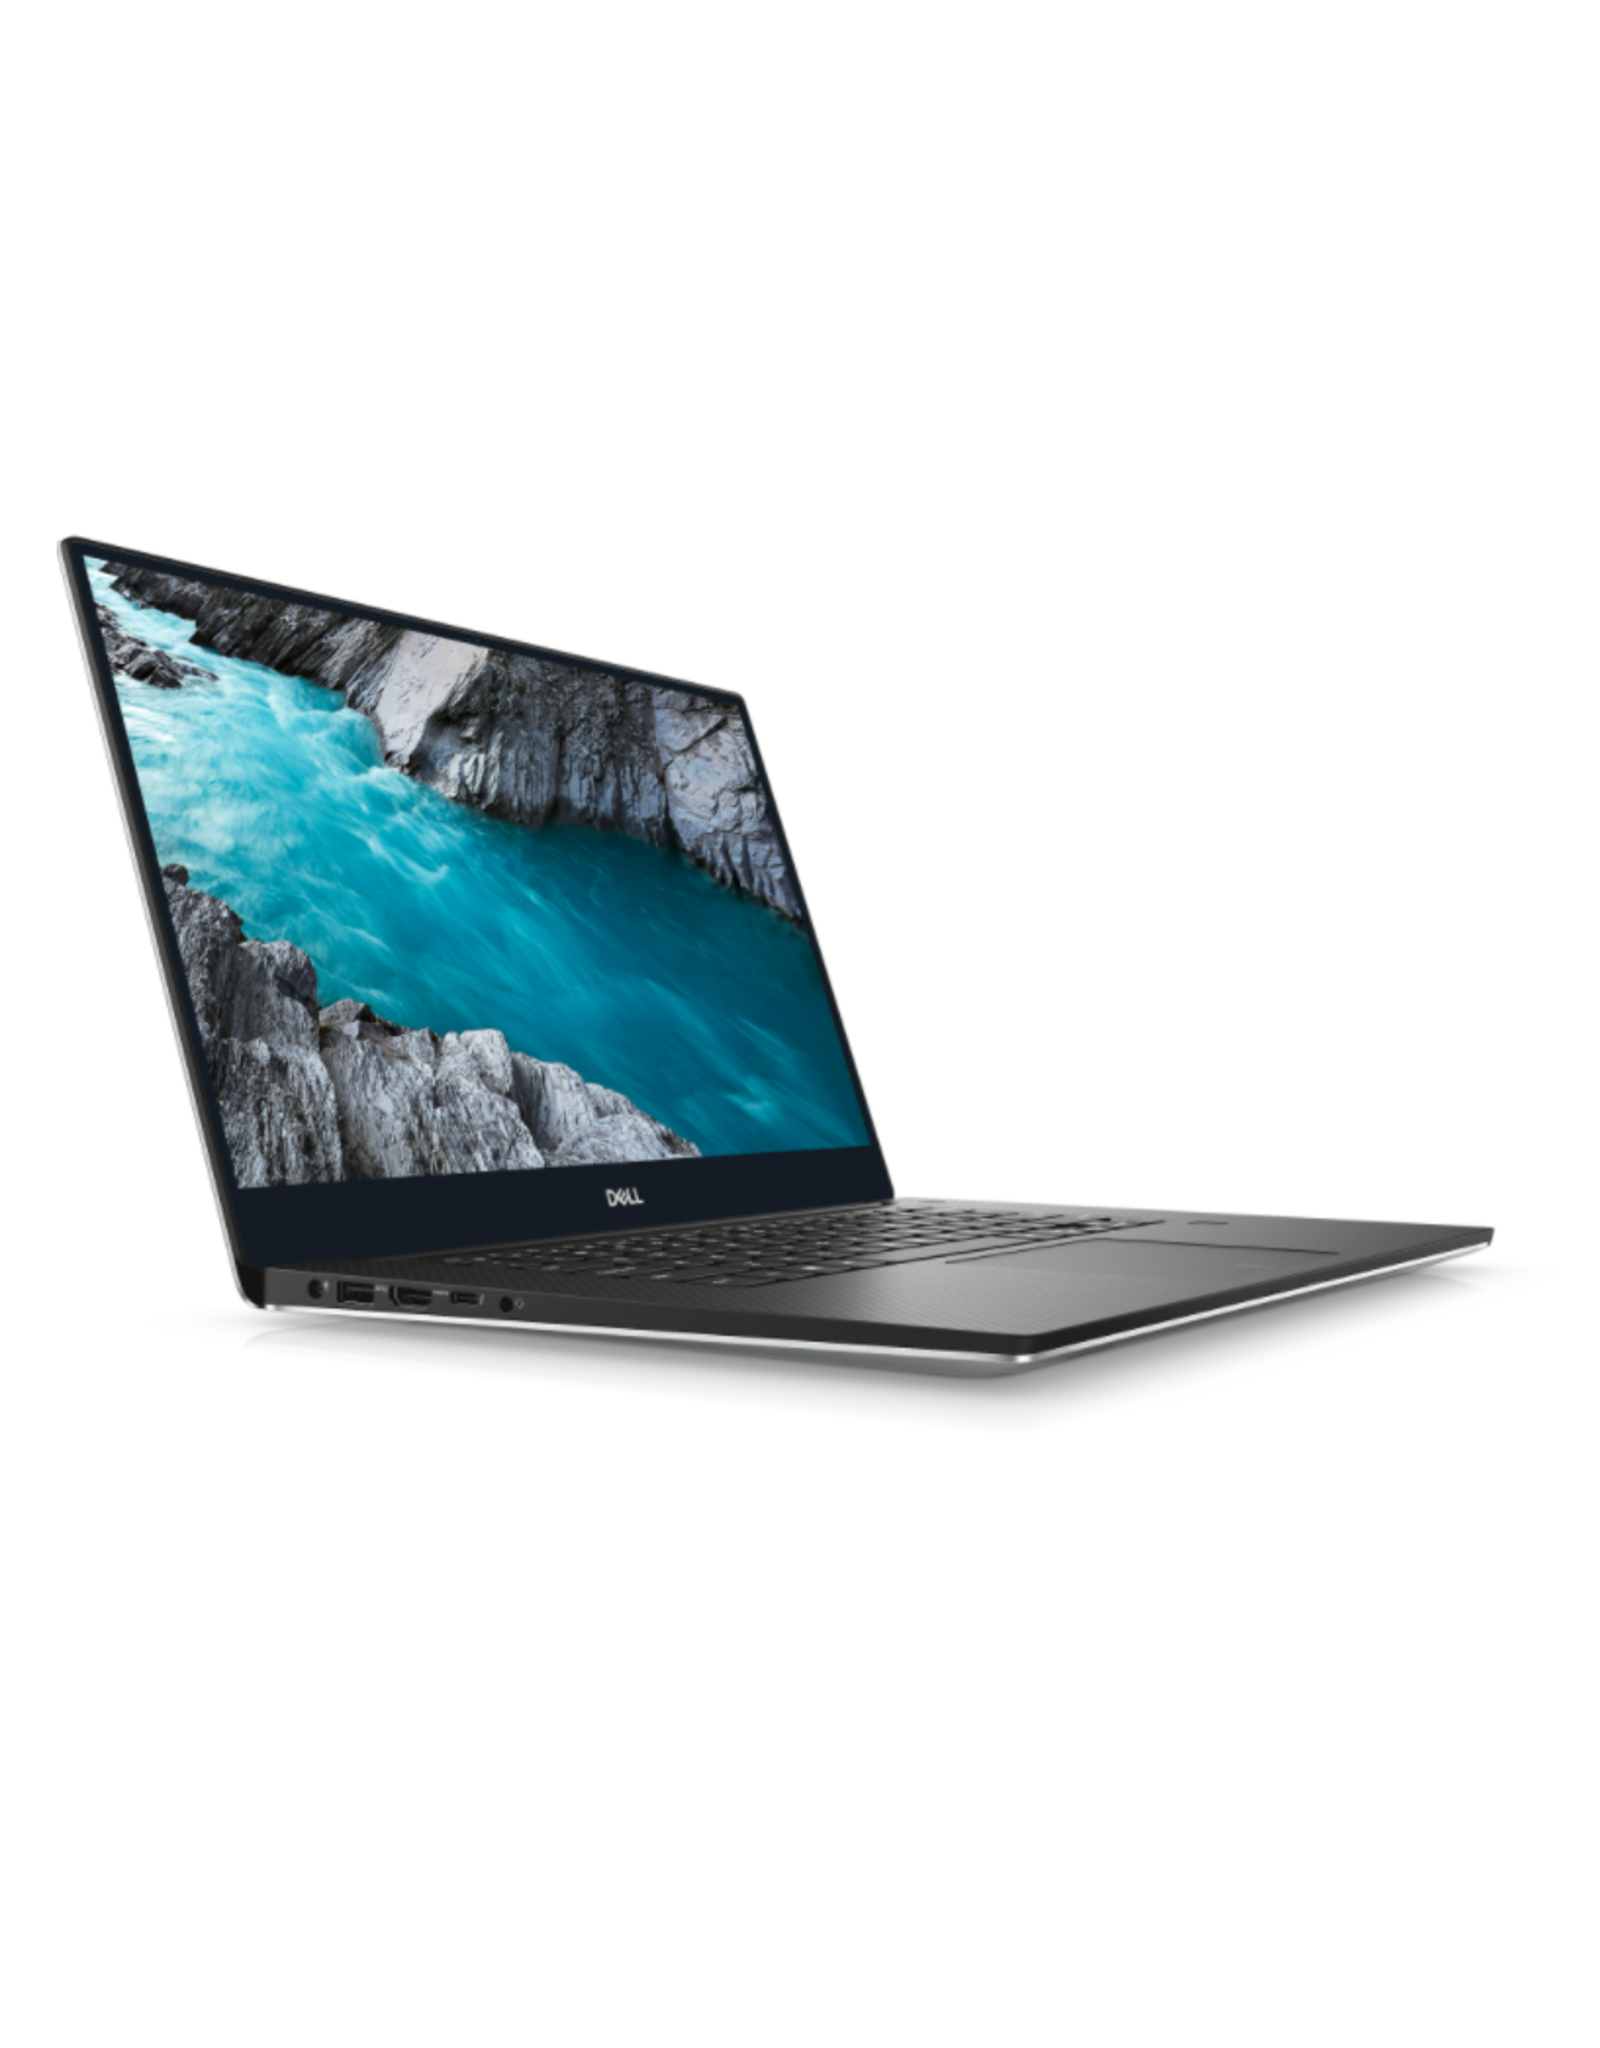 "DELL DELL XPS 15 (7590): 9TH GEN INTEL I7-9750H, WINDOWS 10 PRO, 16BG DDR4 RAM, 15.6"" 4K UHD (3840 X 2160)  OLED INFINITY EDGE NON-TOUCH DISPLAY, 1TB SSD, NVIDIA(R) GEFORCE GTX 1650 4GB GDDR5, 3 YRS PRO SUPPORT"